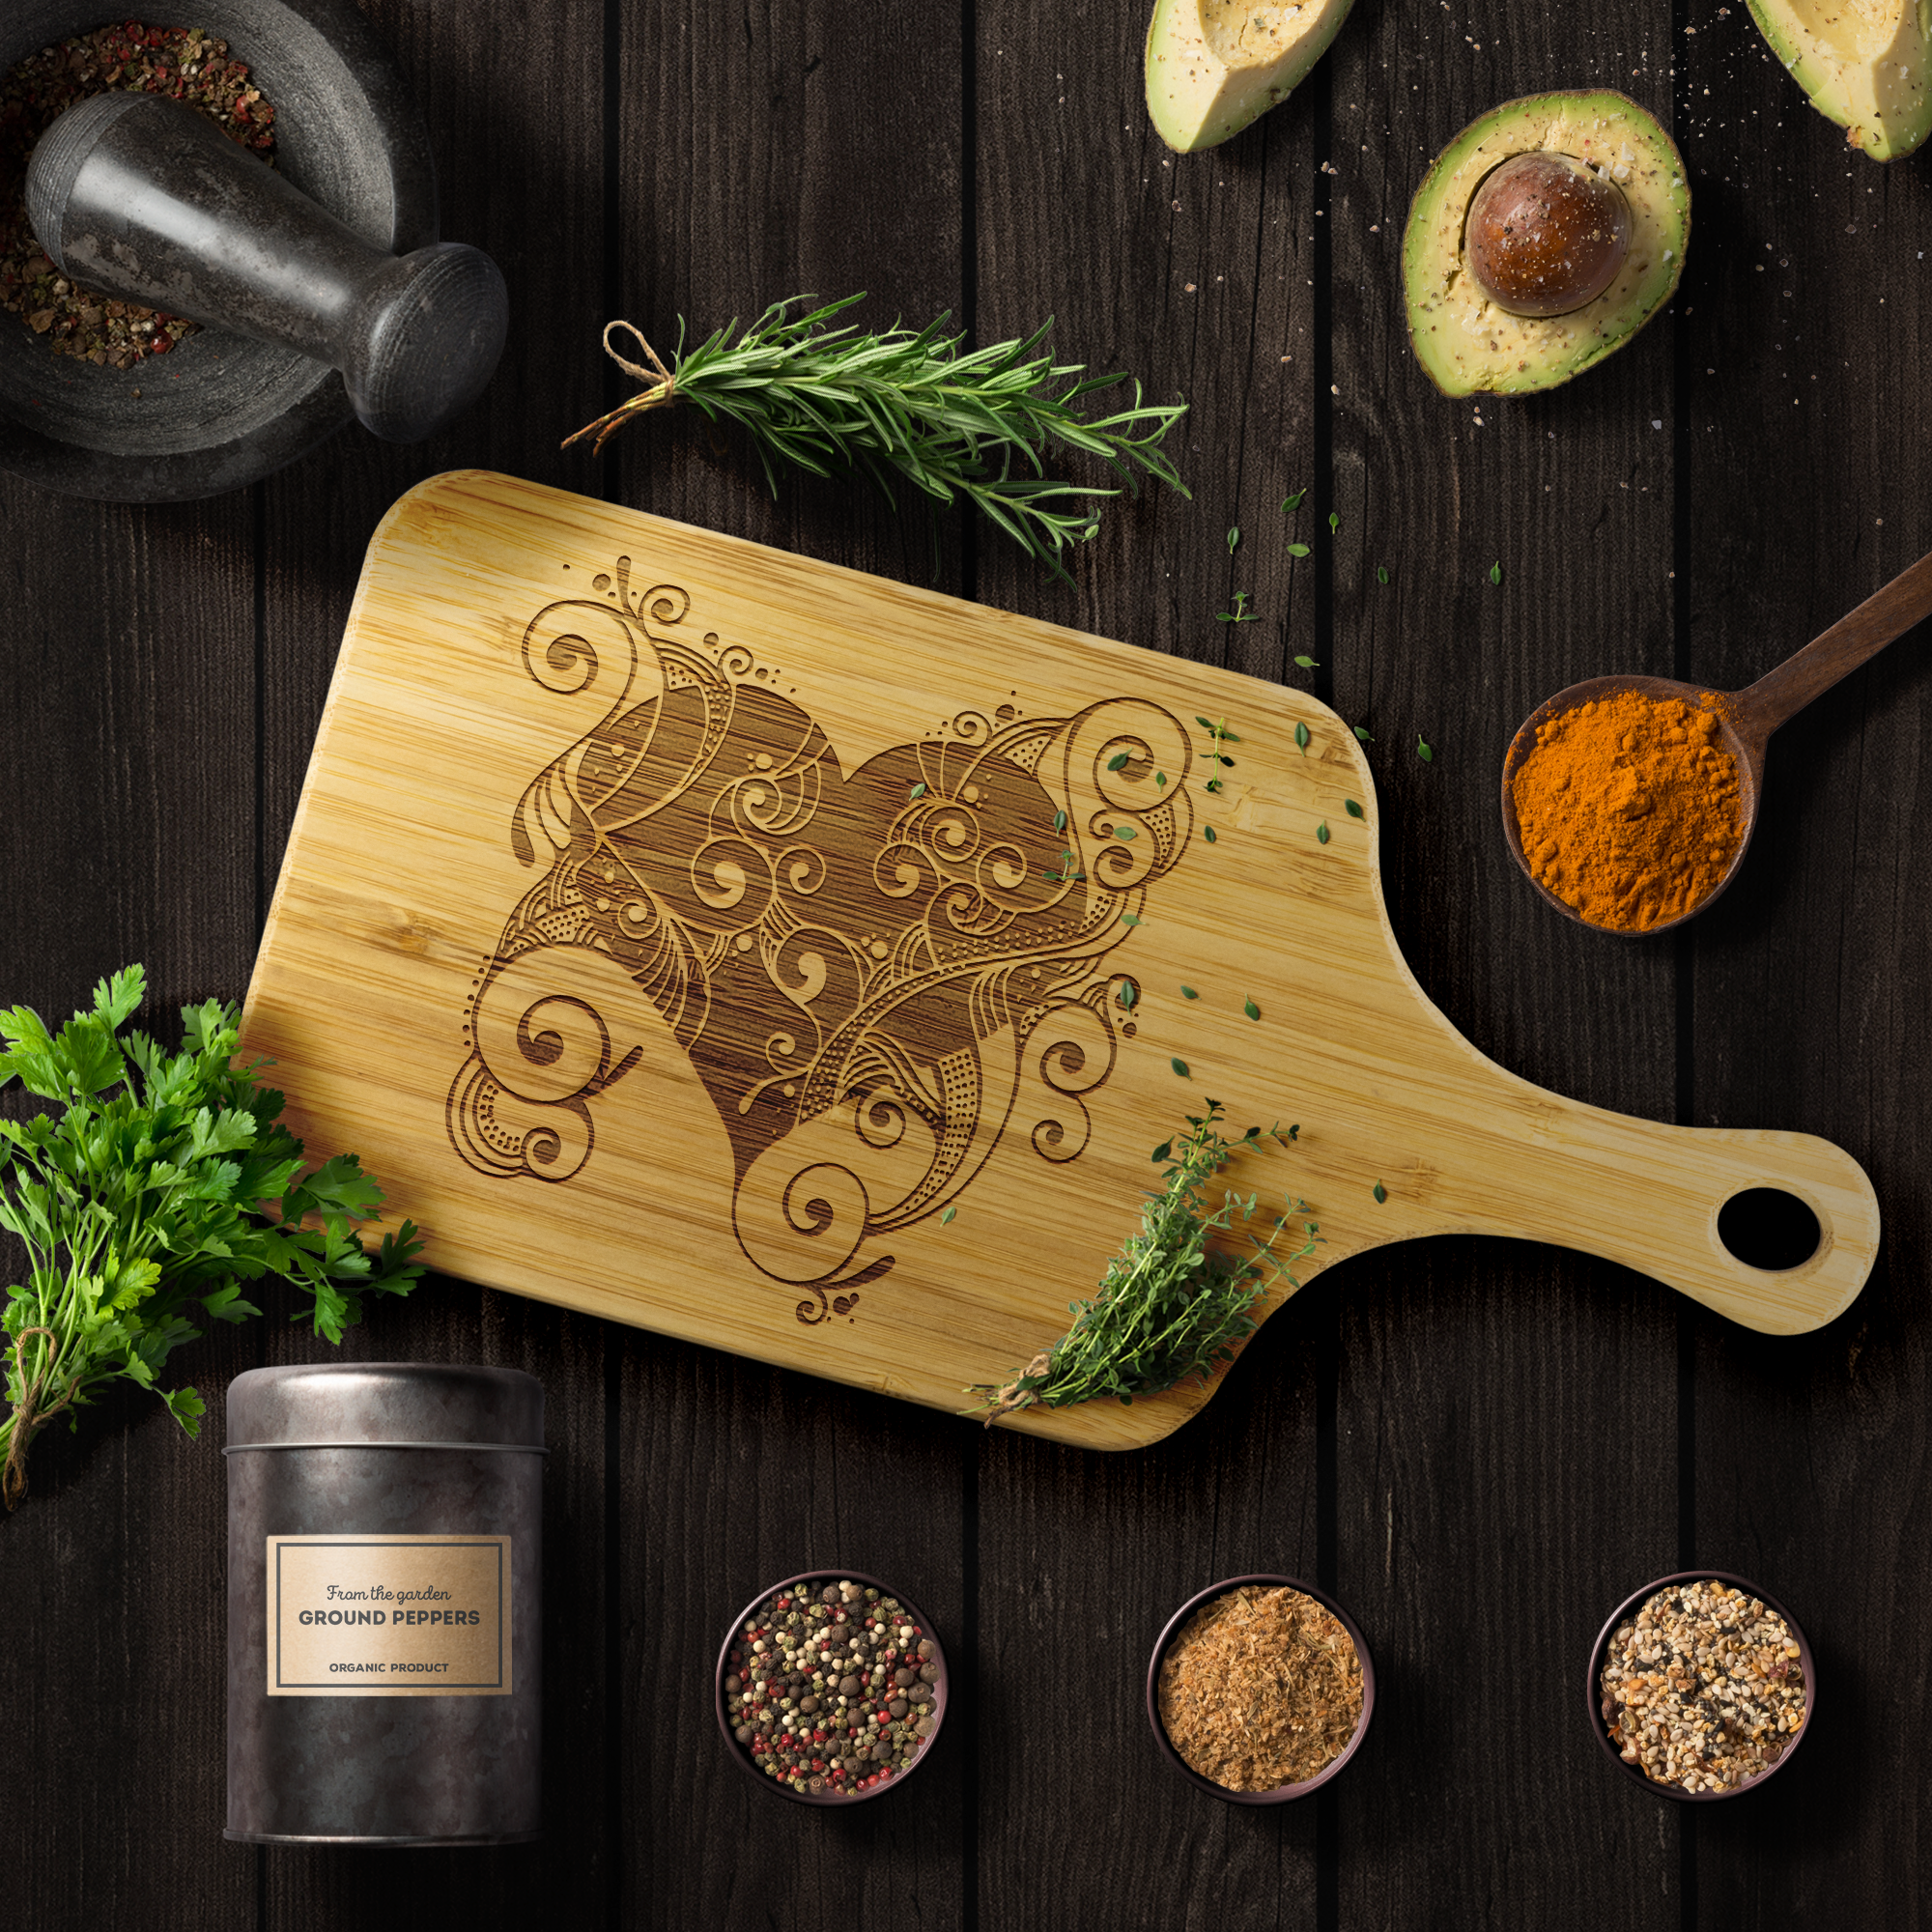 Floral Heart - Wood Cutting Board With Handle